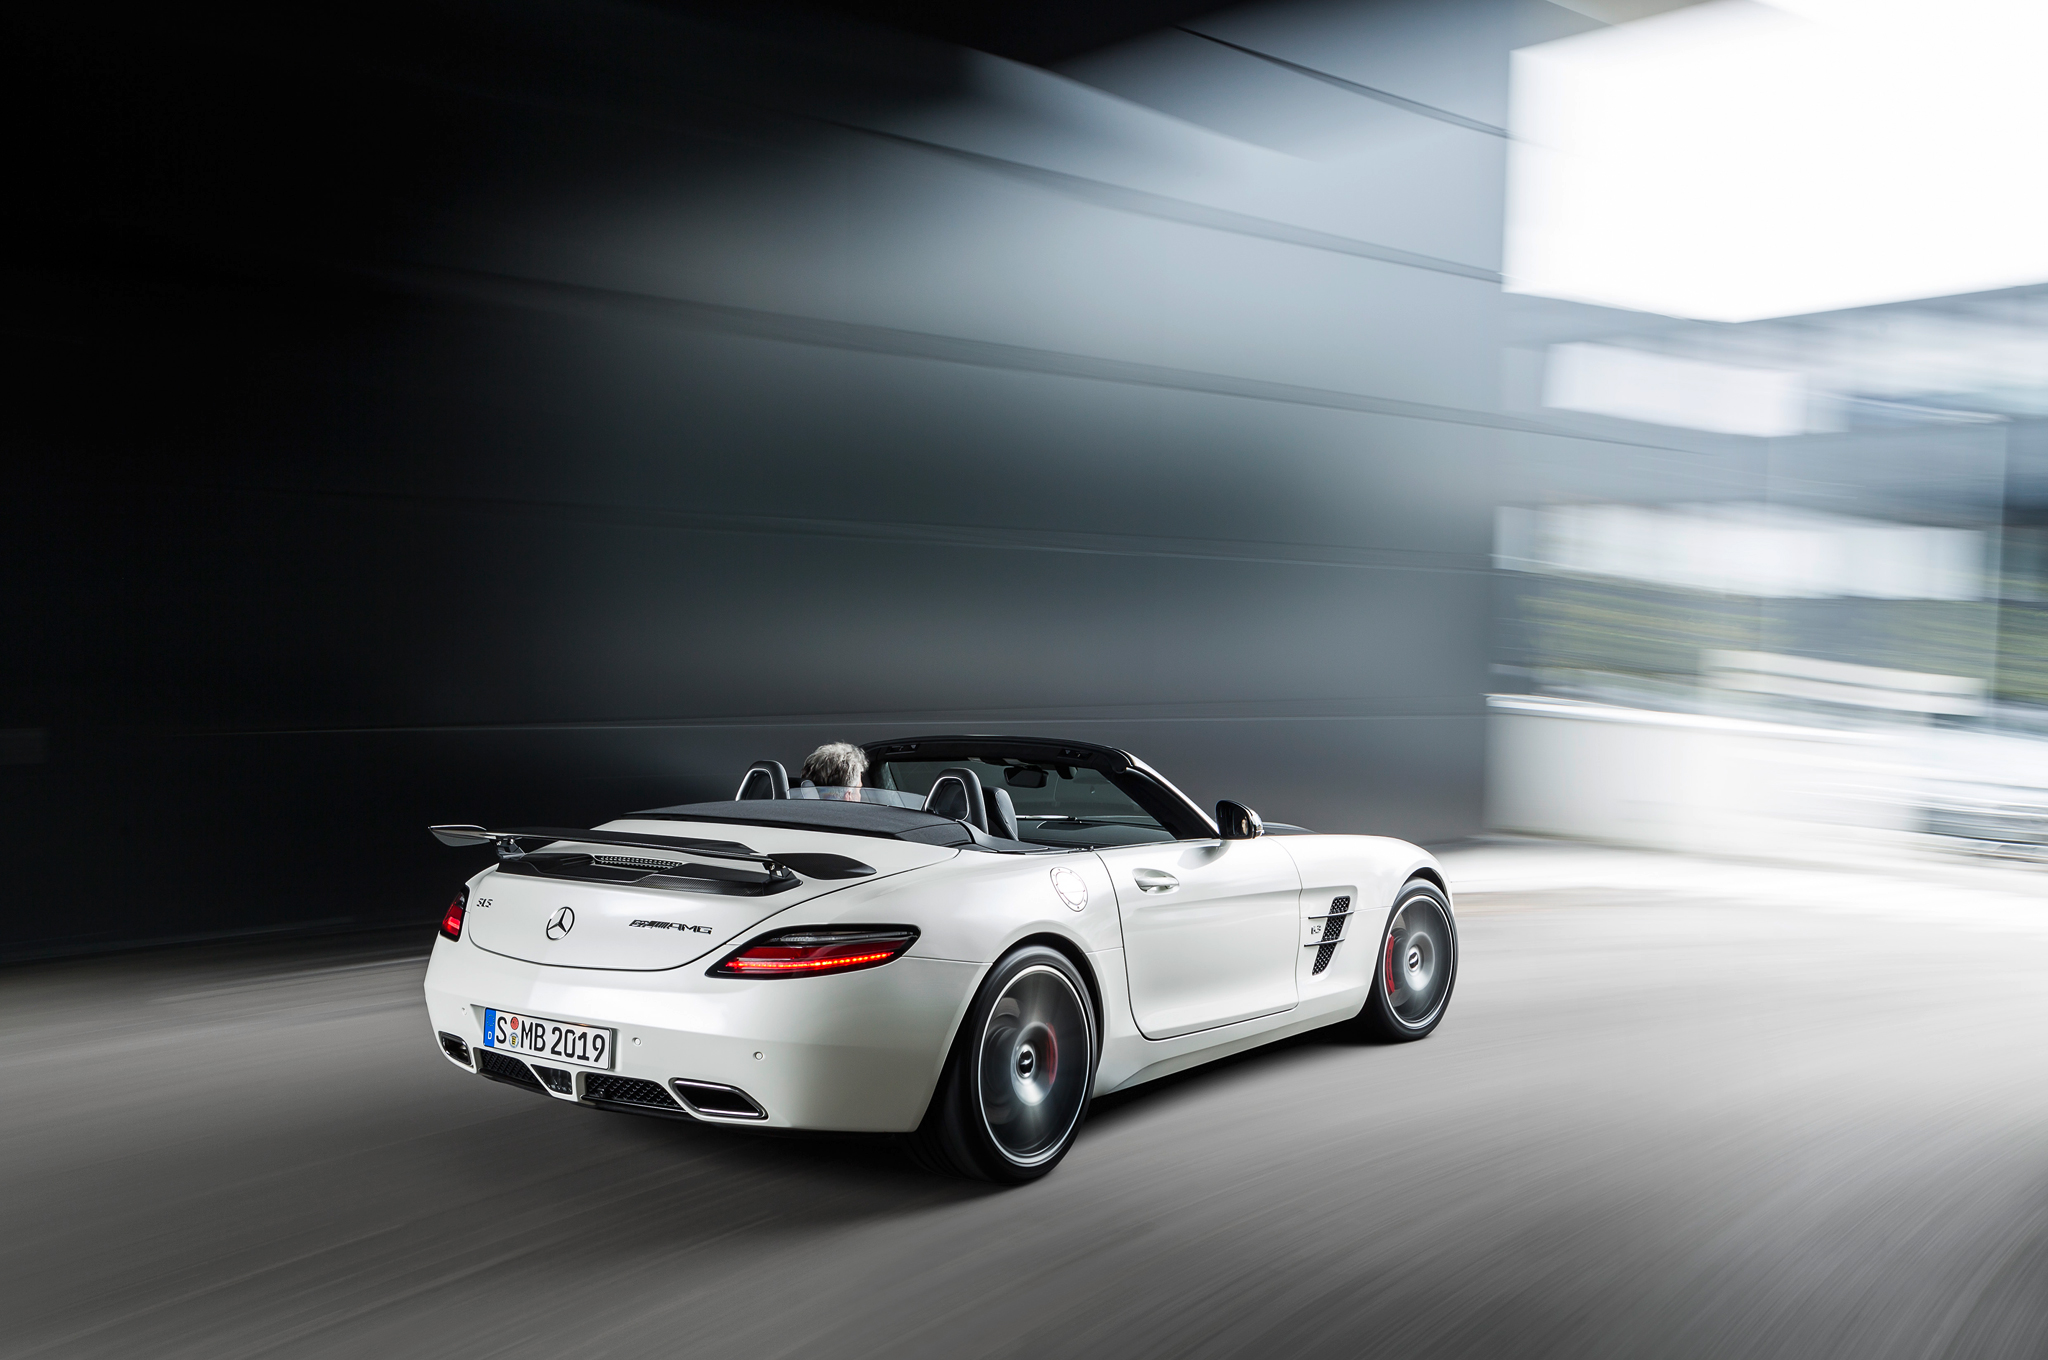 2015 Mercedes-Benz Sls Amg Gt Final Edition #13